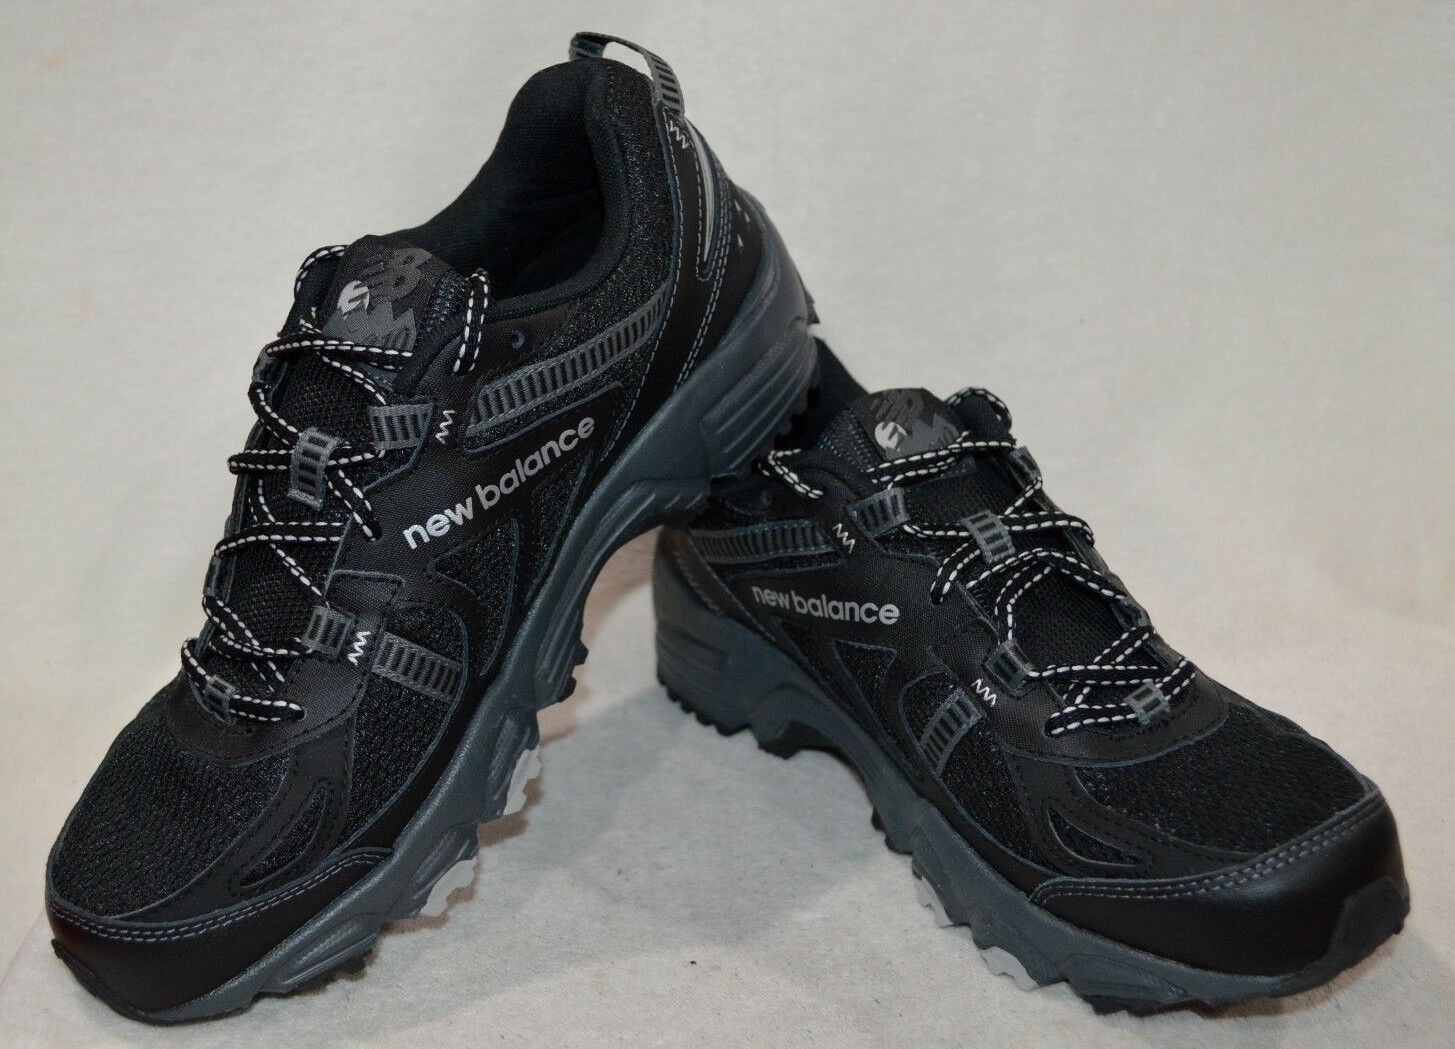 New Balance Men's 410 MT410BS4 Black Silver Grey Trail Running shoes-Size 8 NWOB